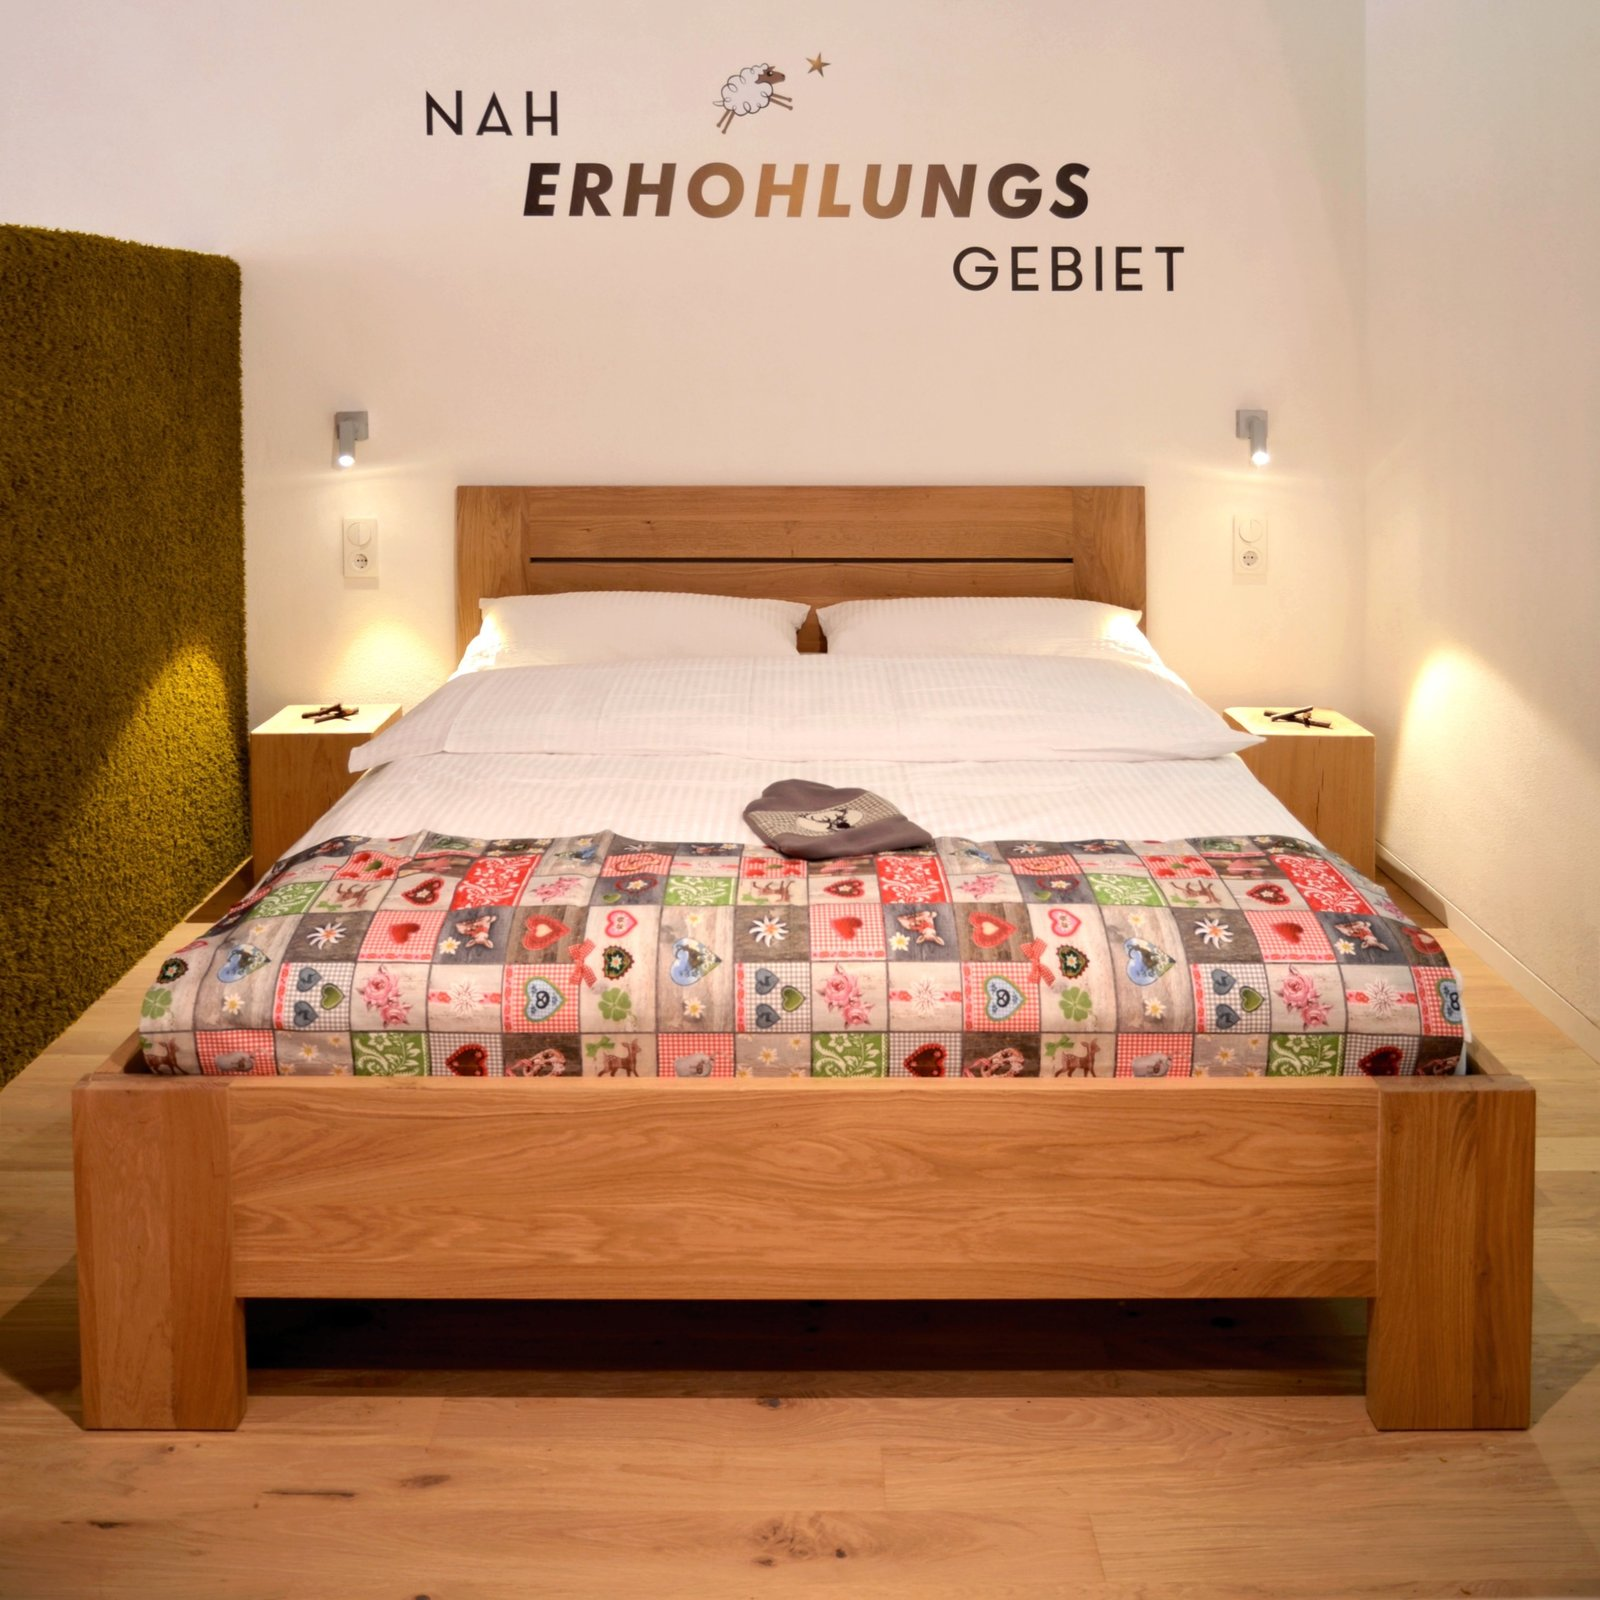 Tagged: Bedroom, Bed, Wall Lighting, Night Stands, and Light Hardwood Floor.  Refugium Betzenstein by Dwell from Escape to a Bio-Passive Vacation Refuge in a Bavarian Nature Park